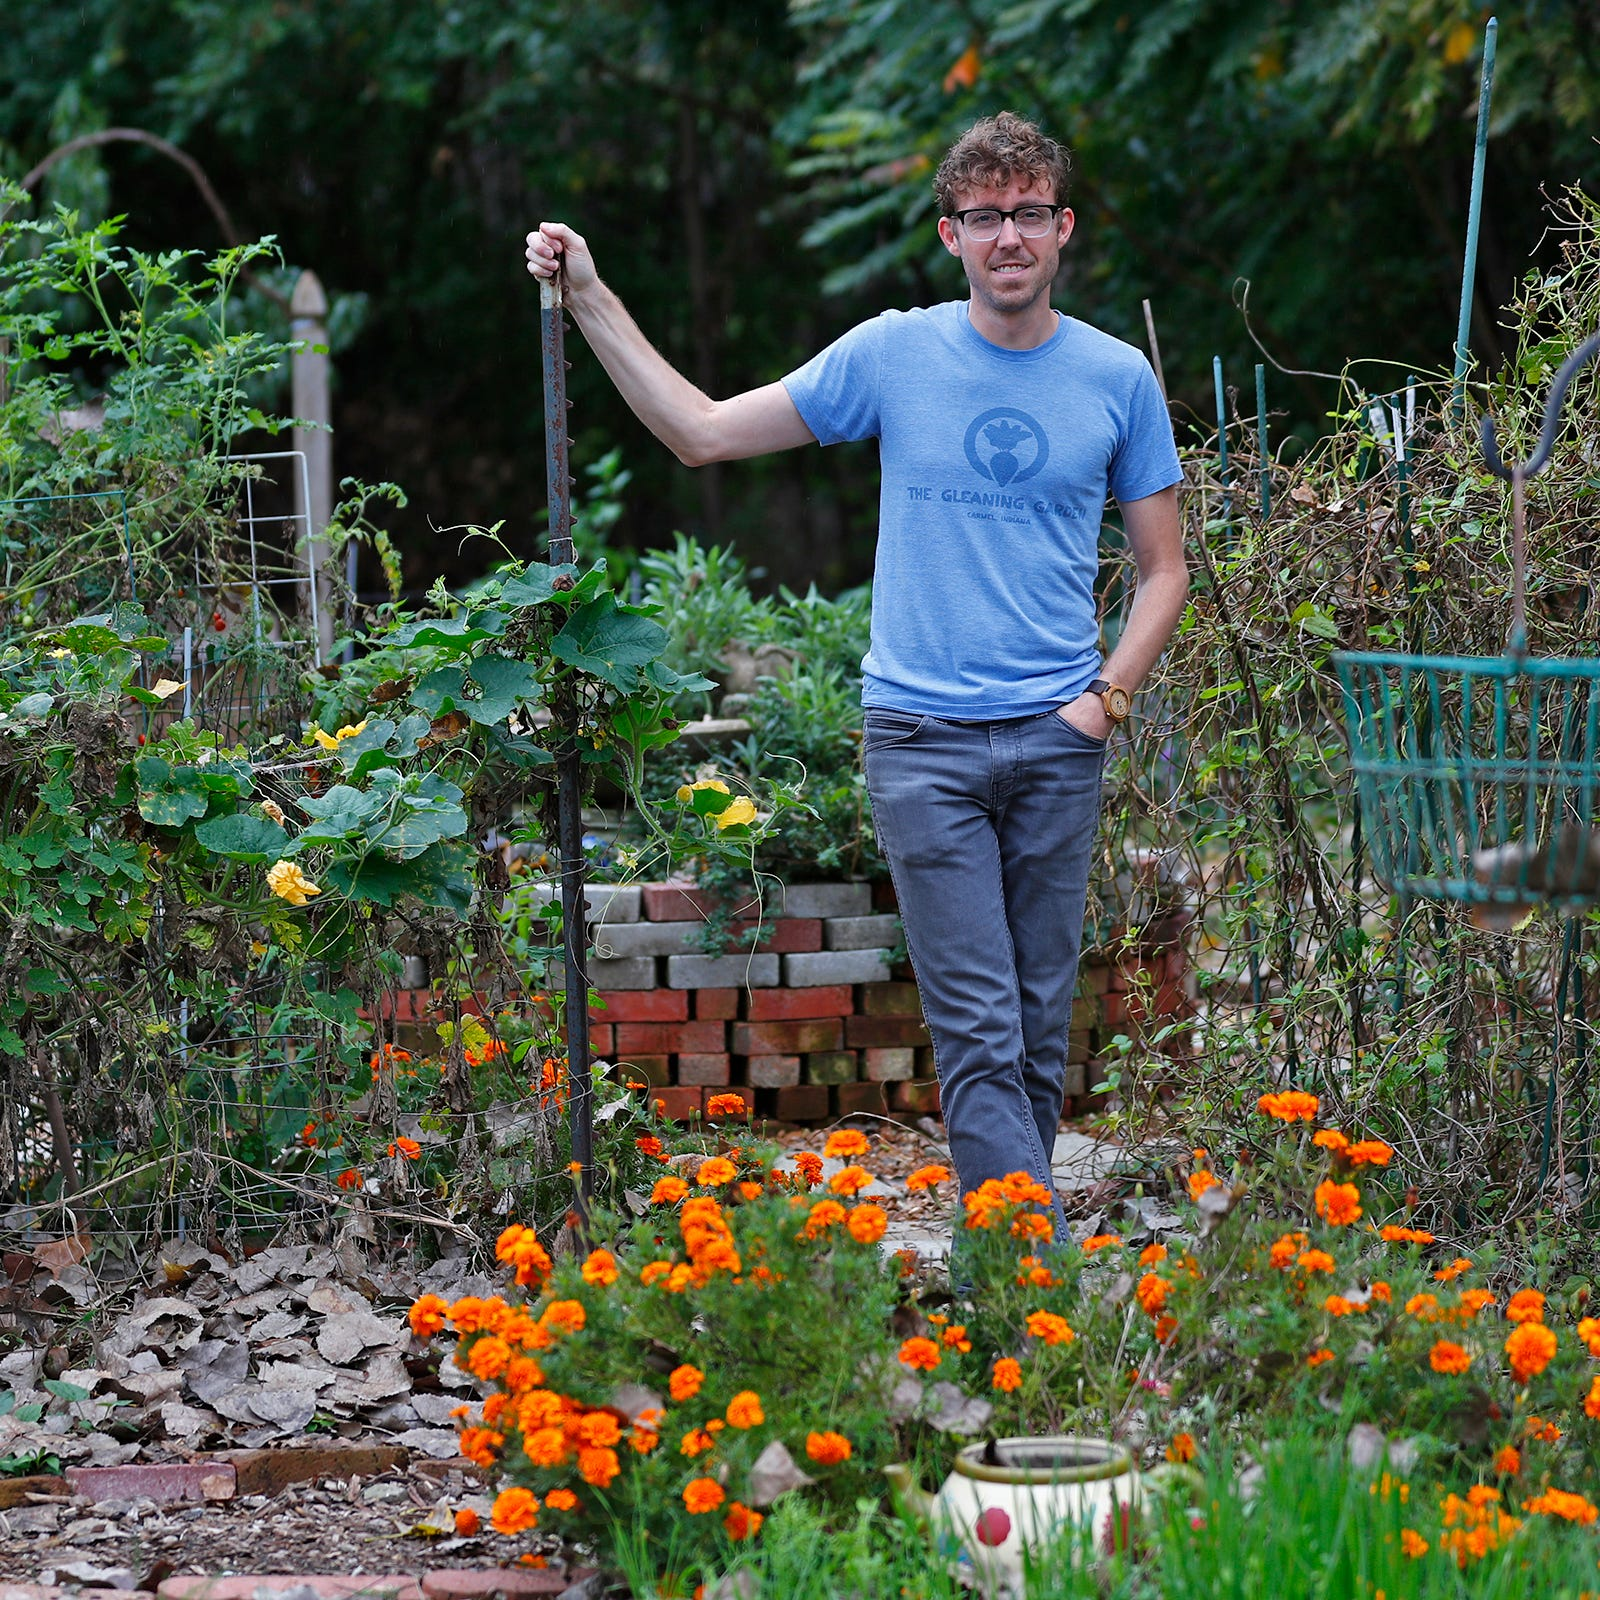 Carmel garden that feeds the hungry could get swallowed up by city development push